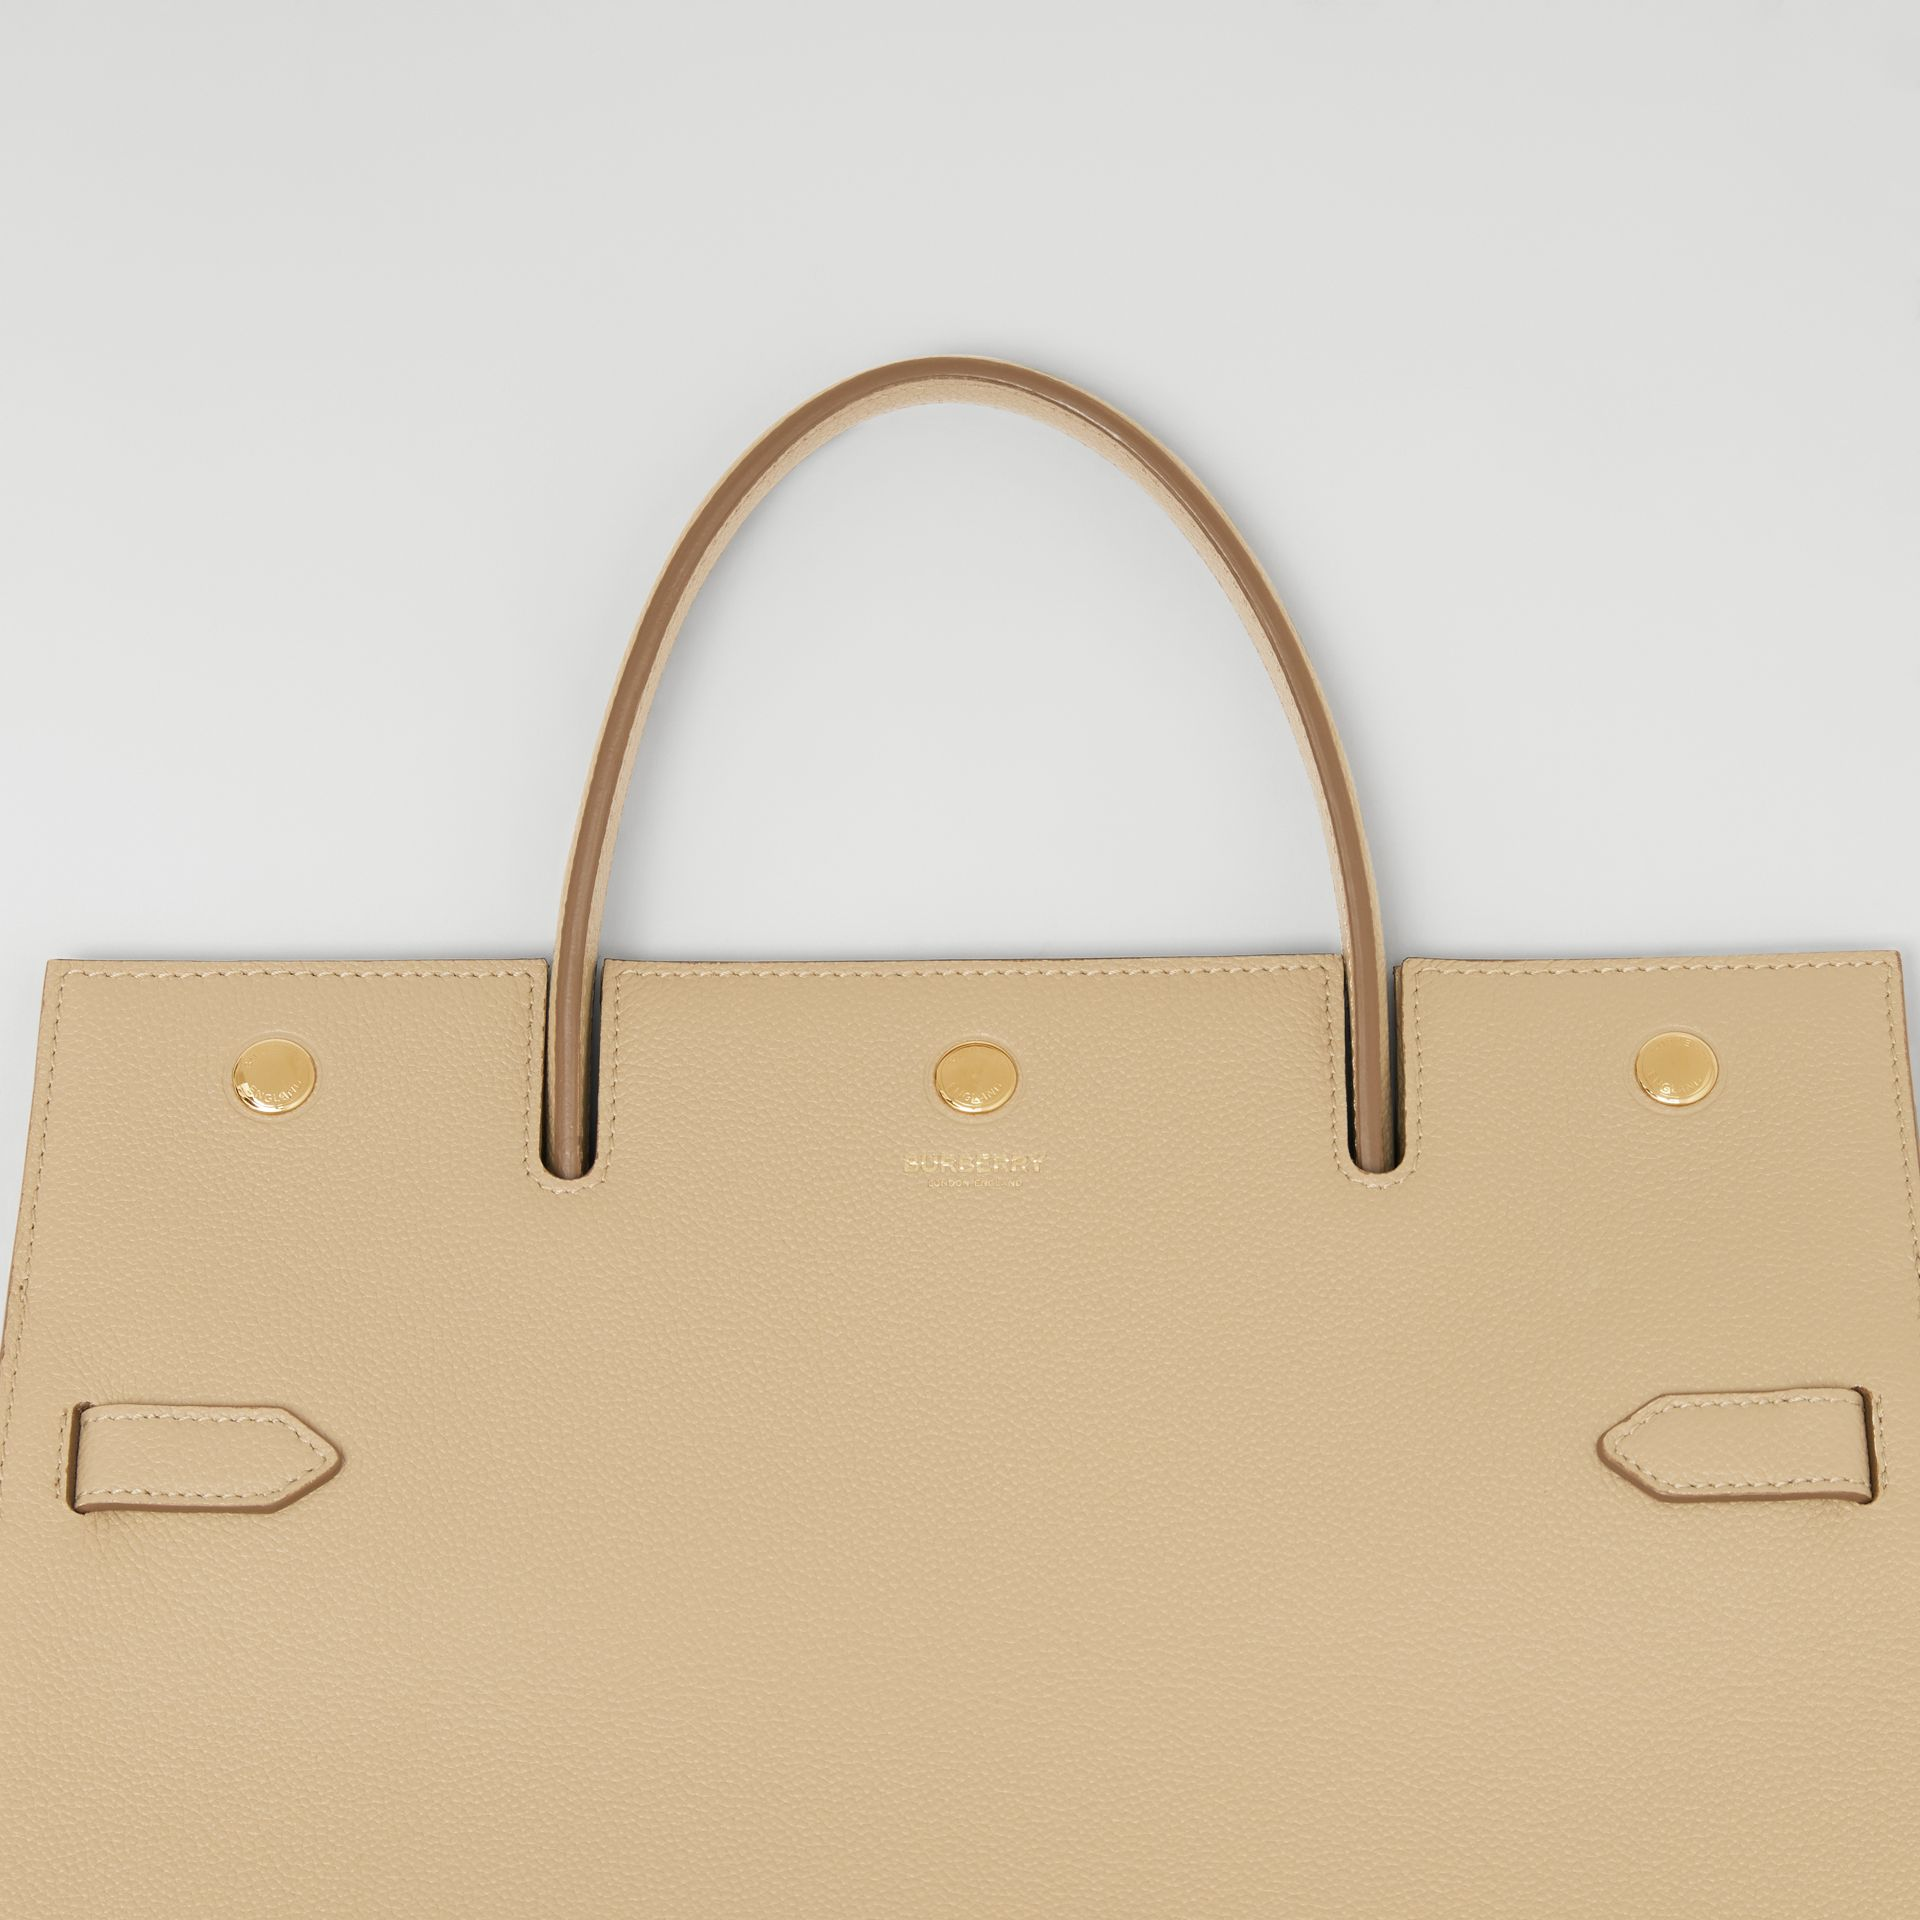 Medium Leather Title Bag in Honey - Women | Burberry - gallery image 1